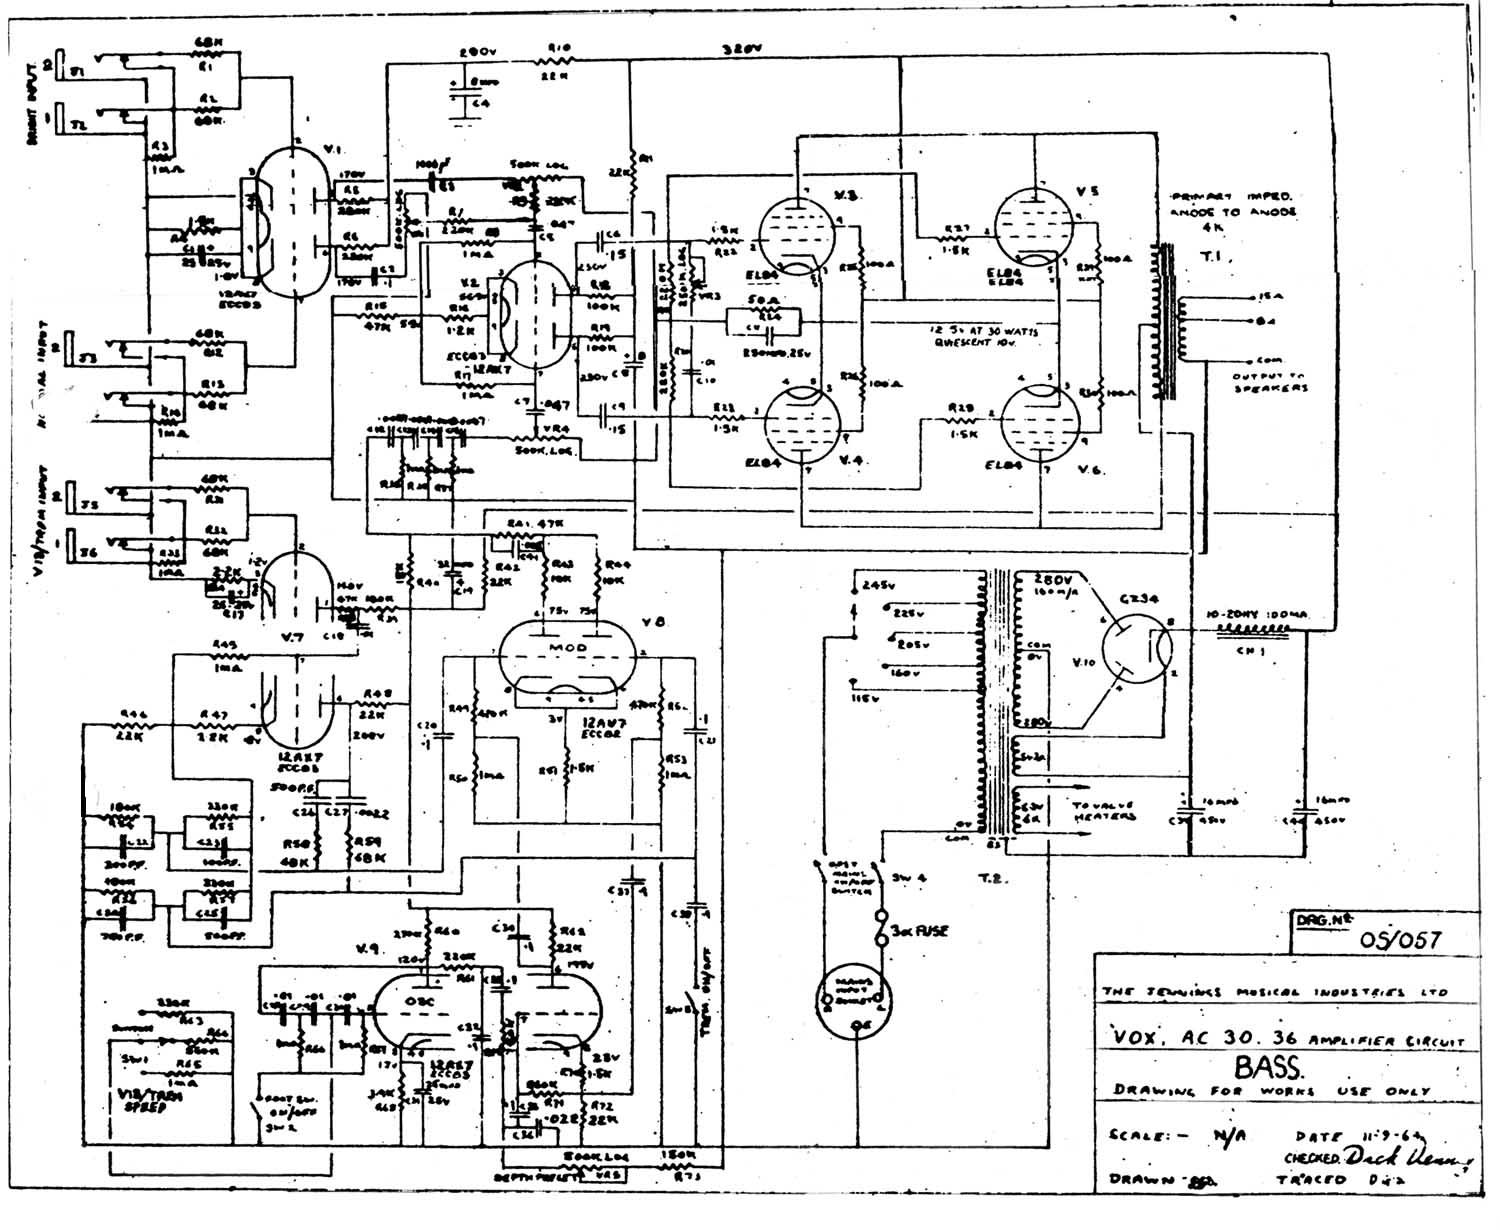 Vox Vintage Circuit Diagrams 1959 Fender Precision Bass Wiring Diagram Ac30 Model 1964 Download